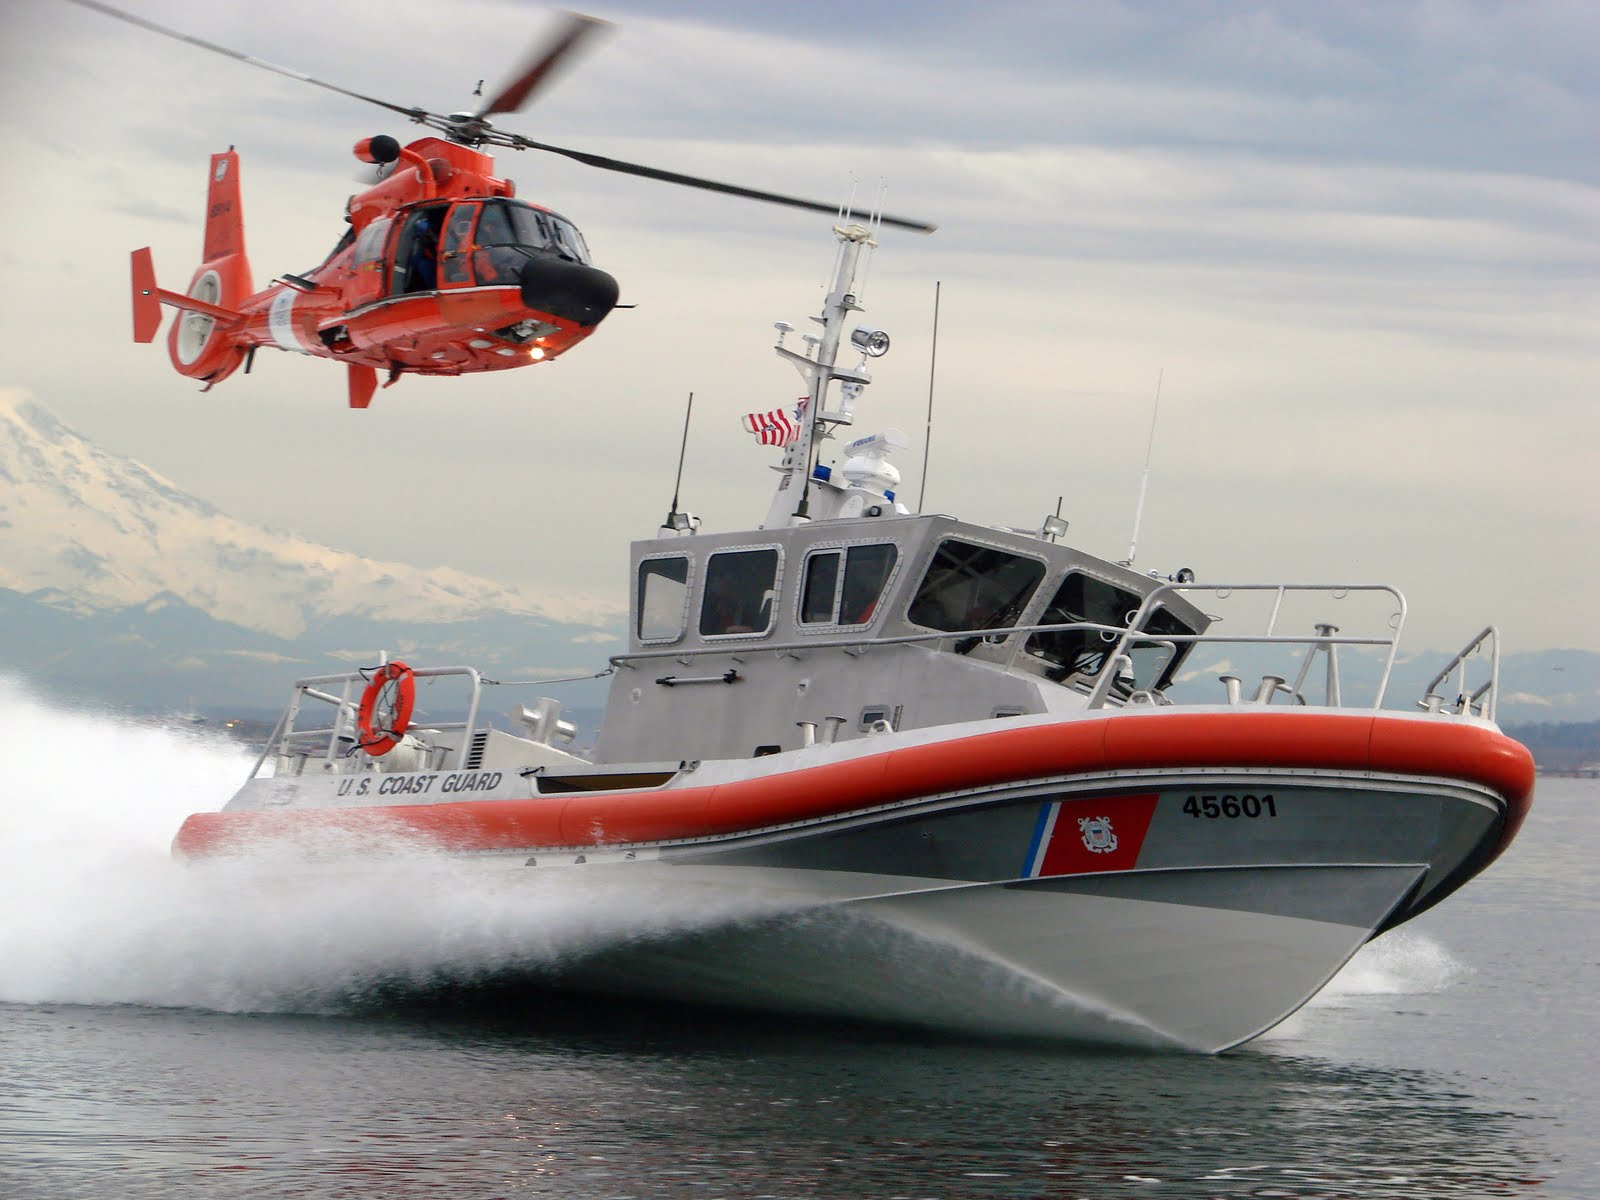 coast-guard-helo-vessel